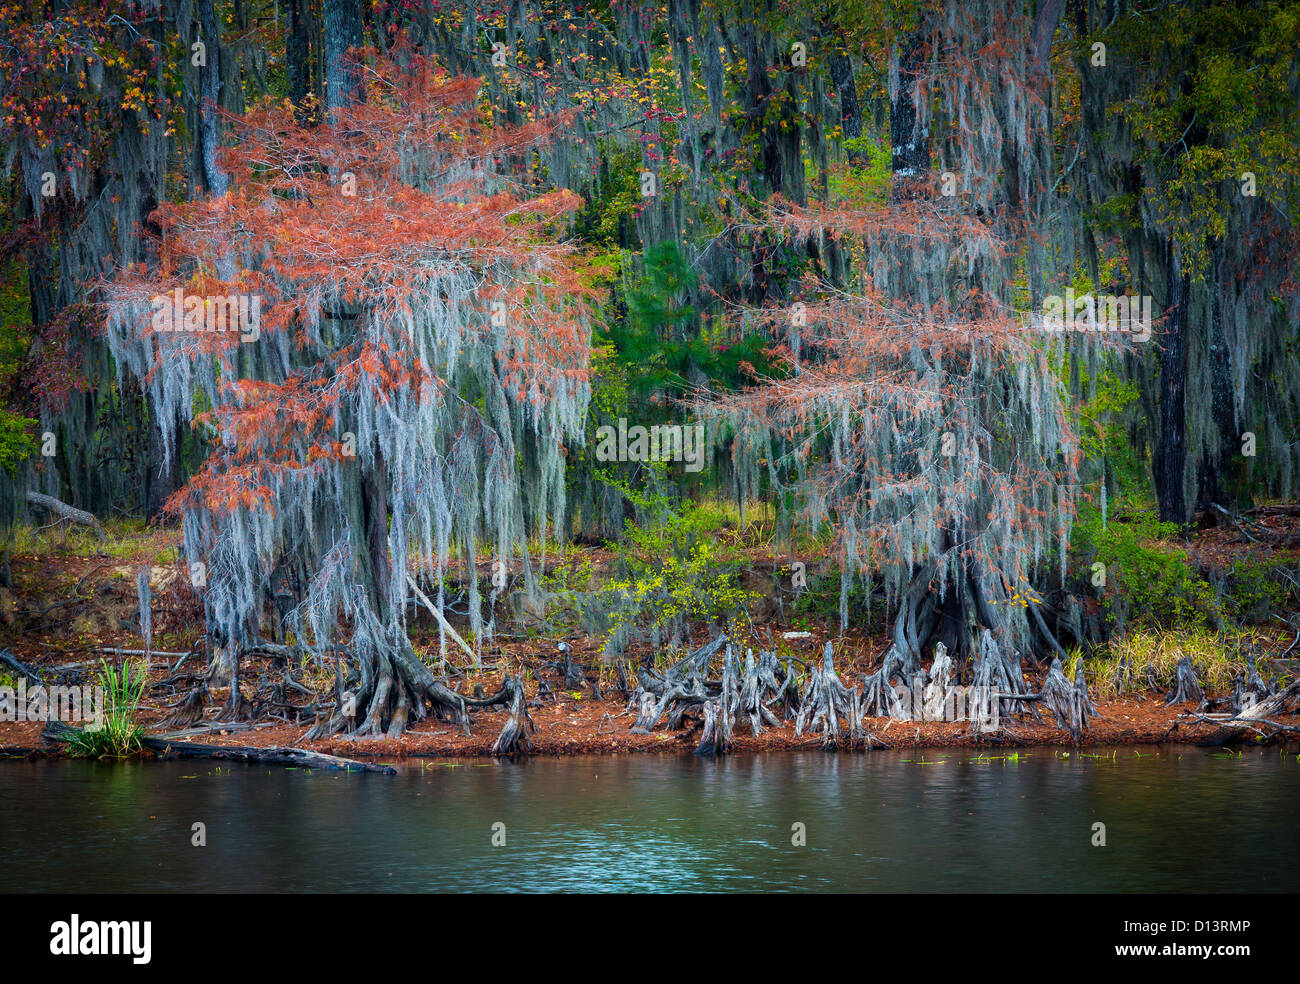 Trees in fall color at Caddo Lake State Park, Texas - Stock Image